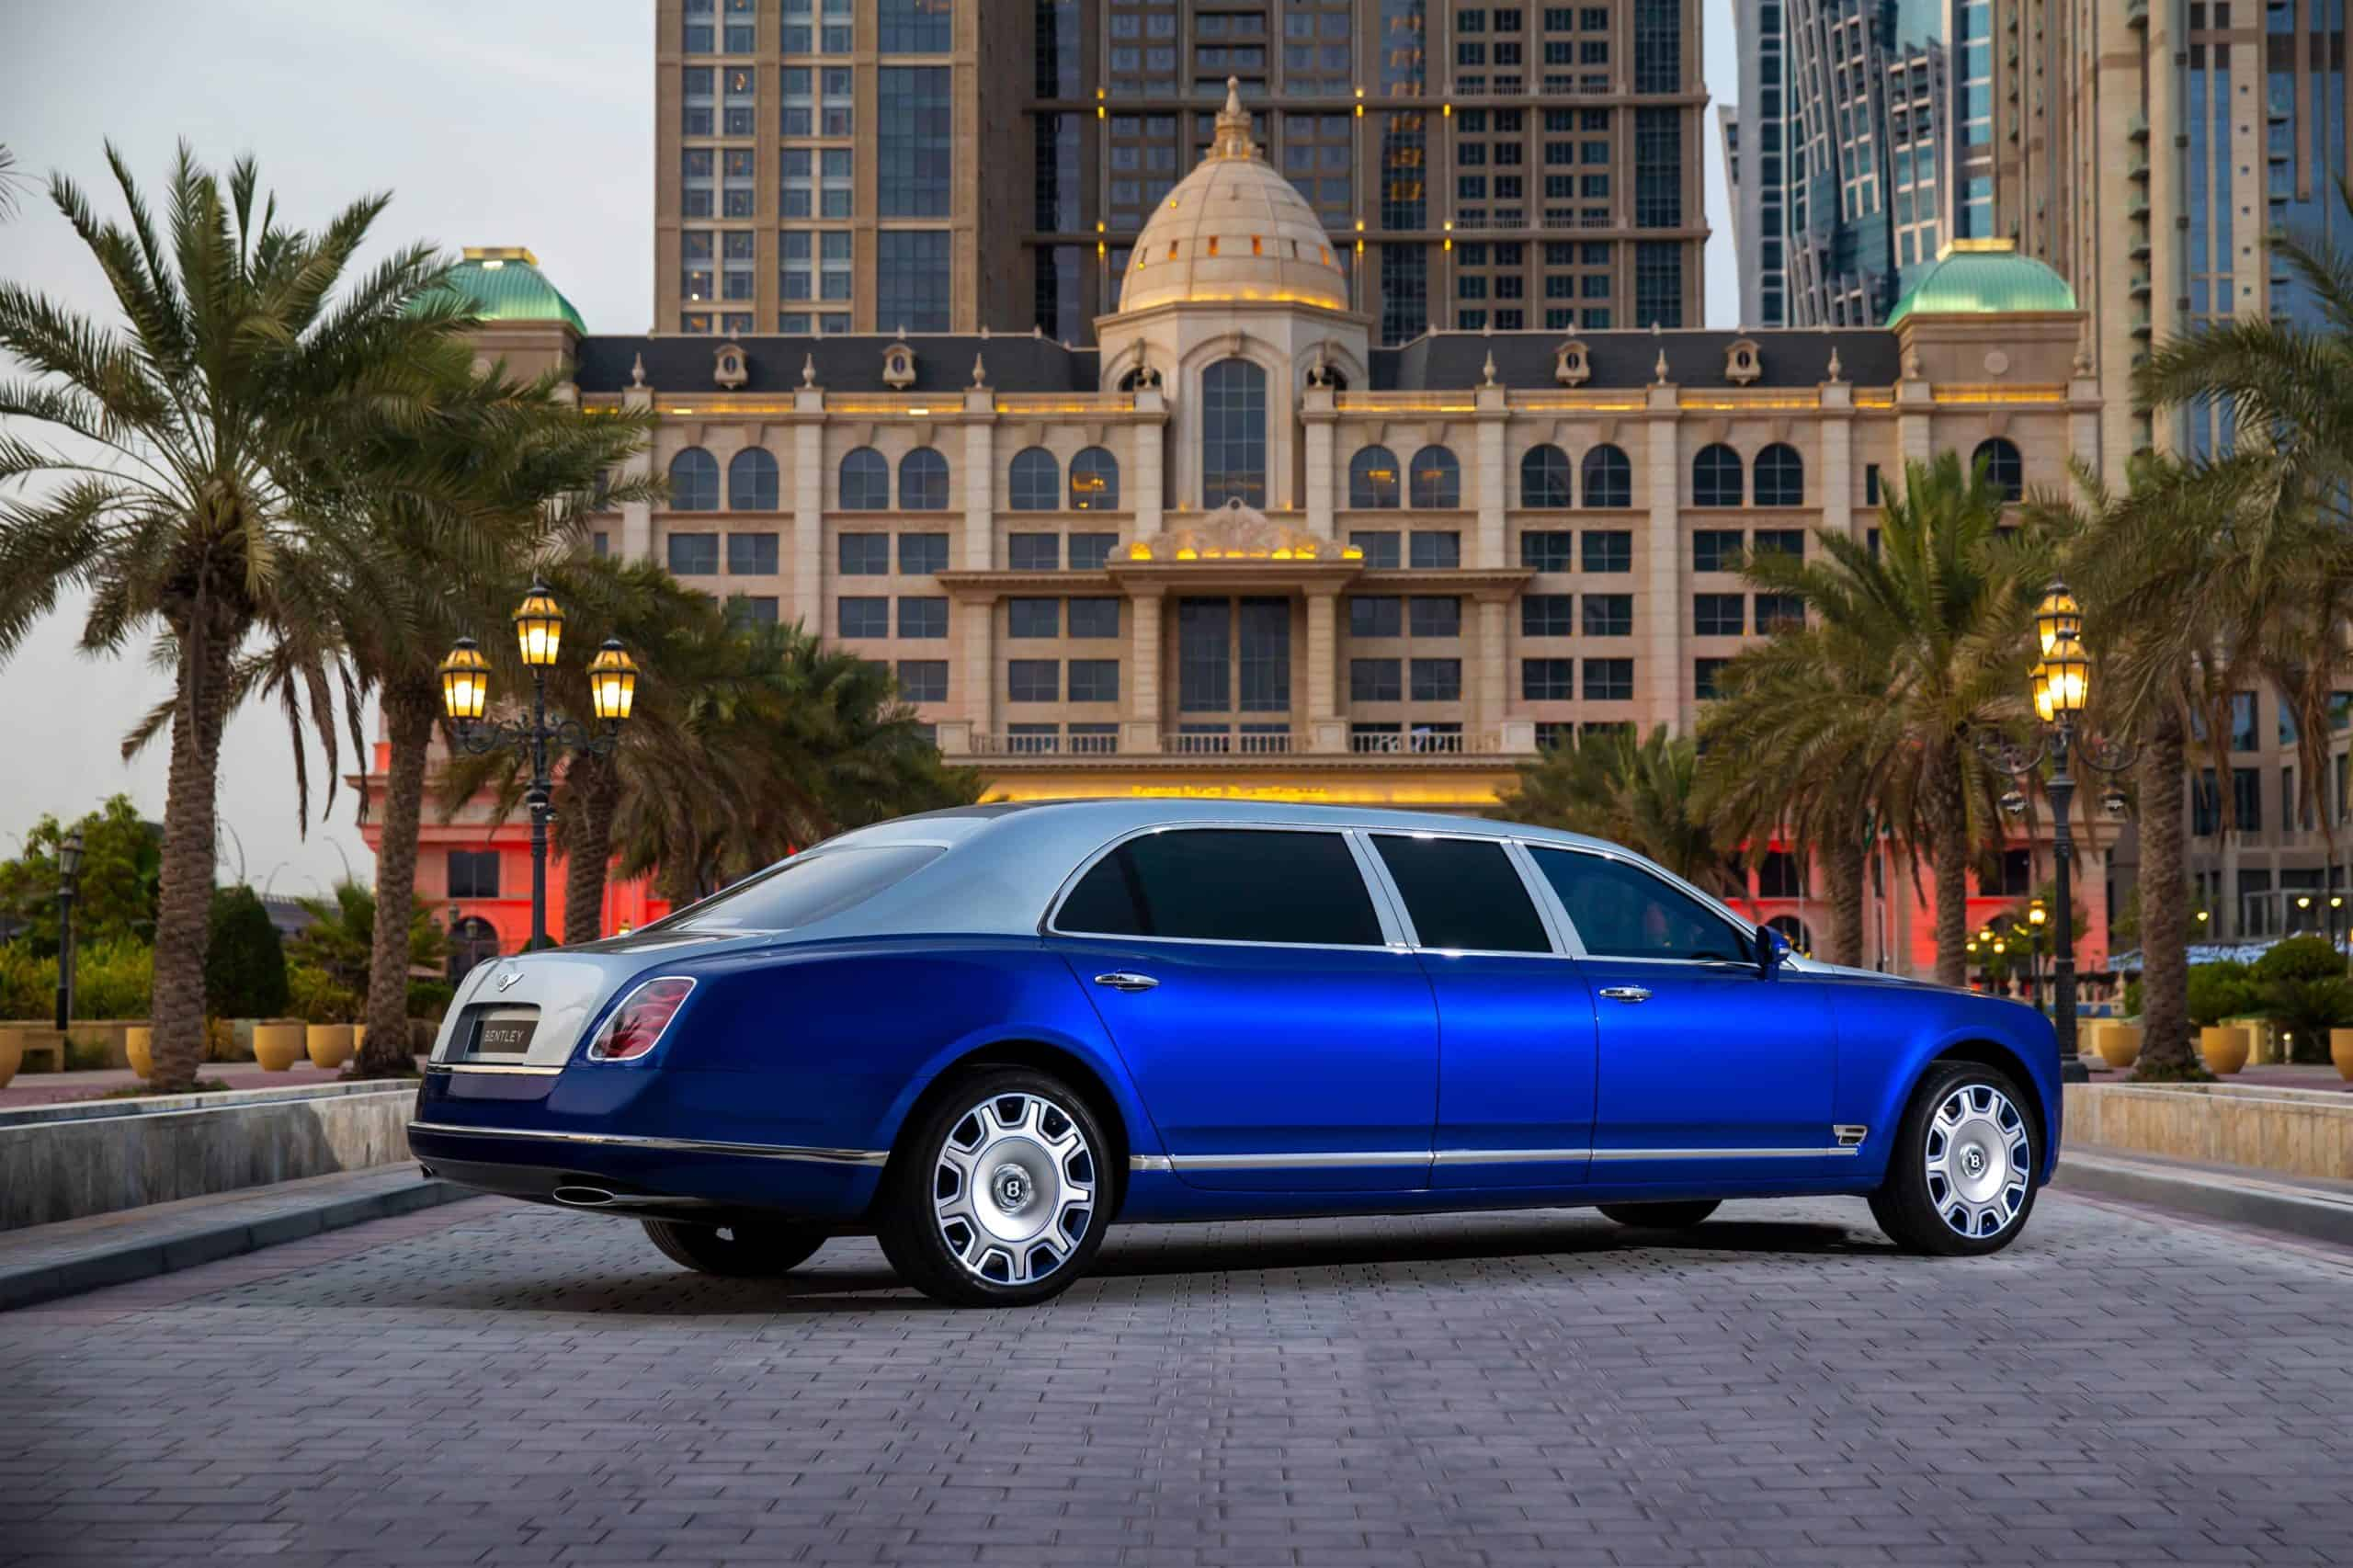 Here's your chance to own the ultimate luxury four door, the Mulsanne Grand Limousine by Mulliner